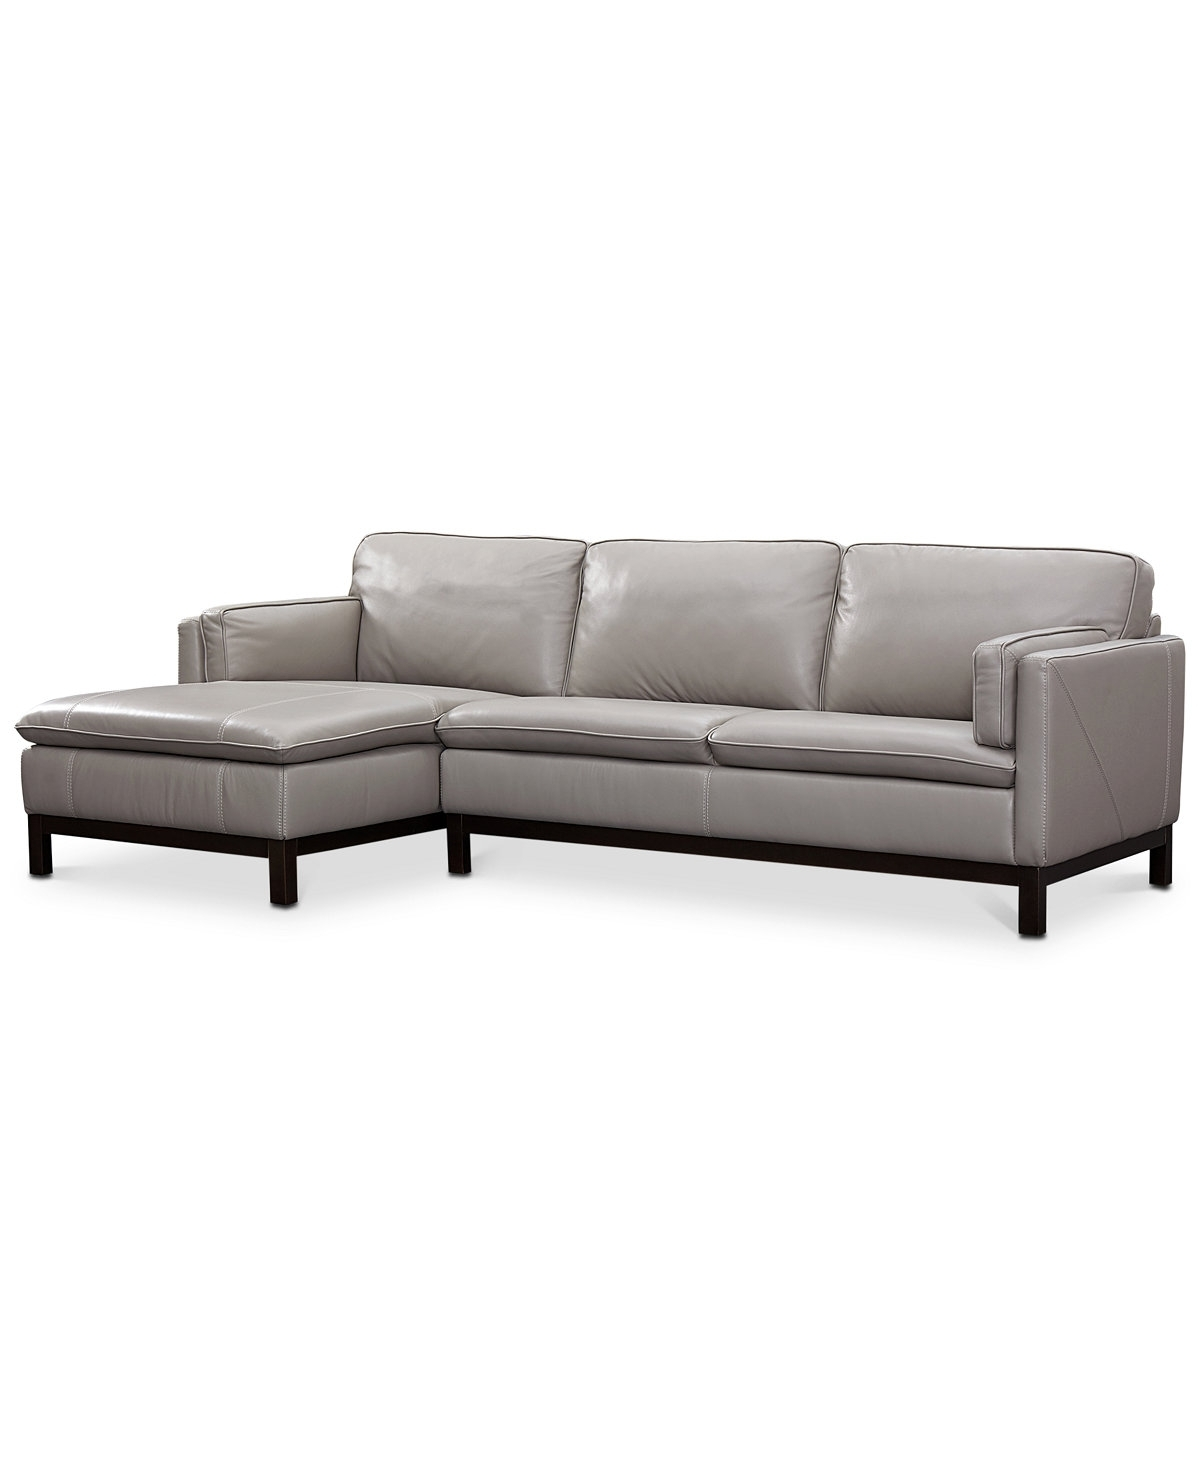 Well Liked El Paso Sectional Sofas Intended For Ventroso 2 Pc (View 20 of 20)